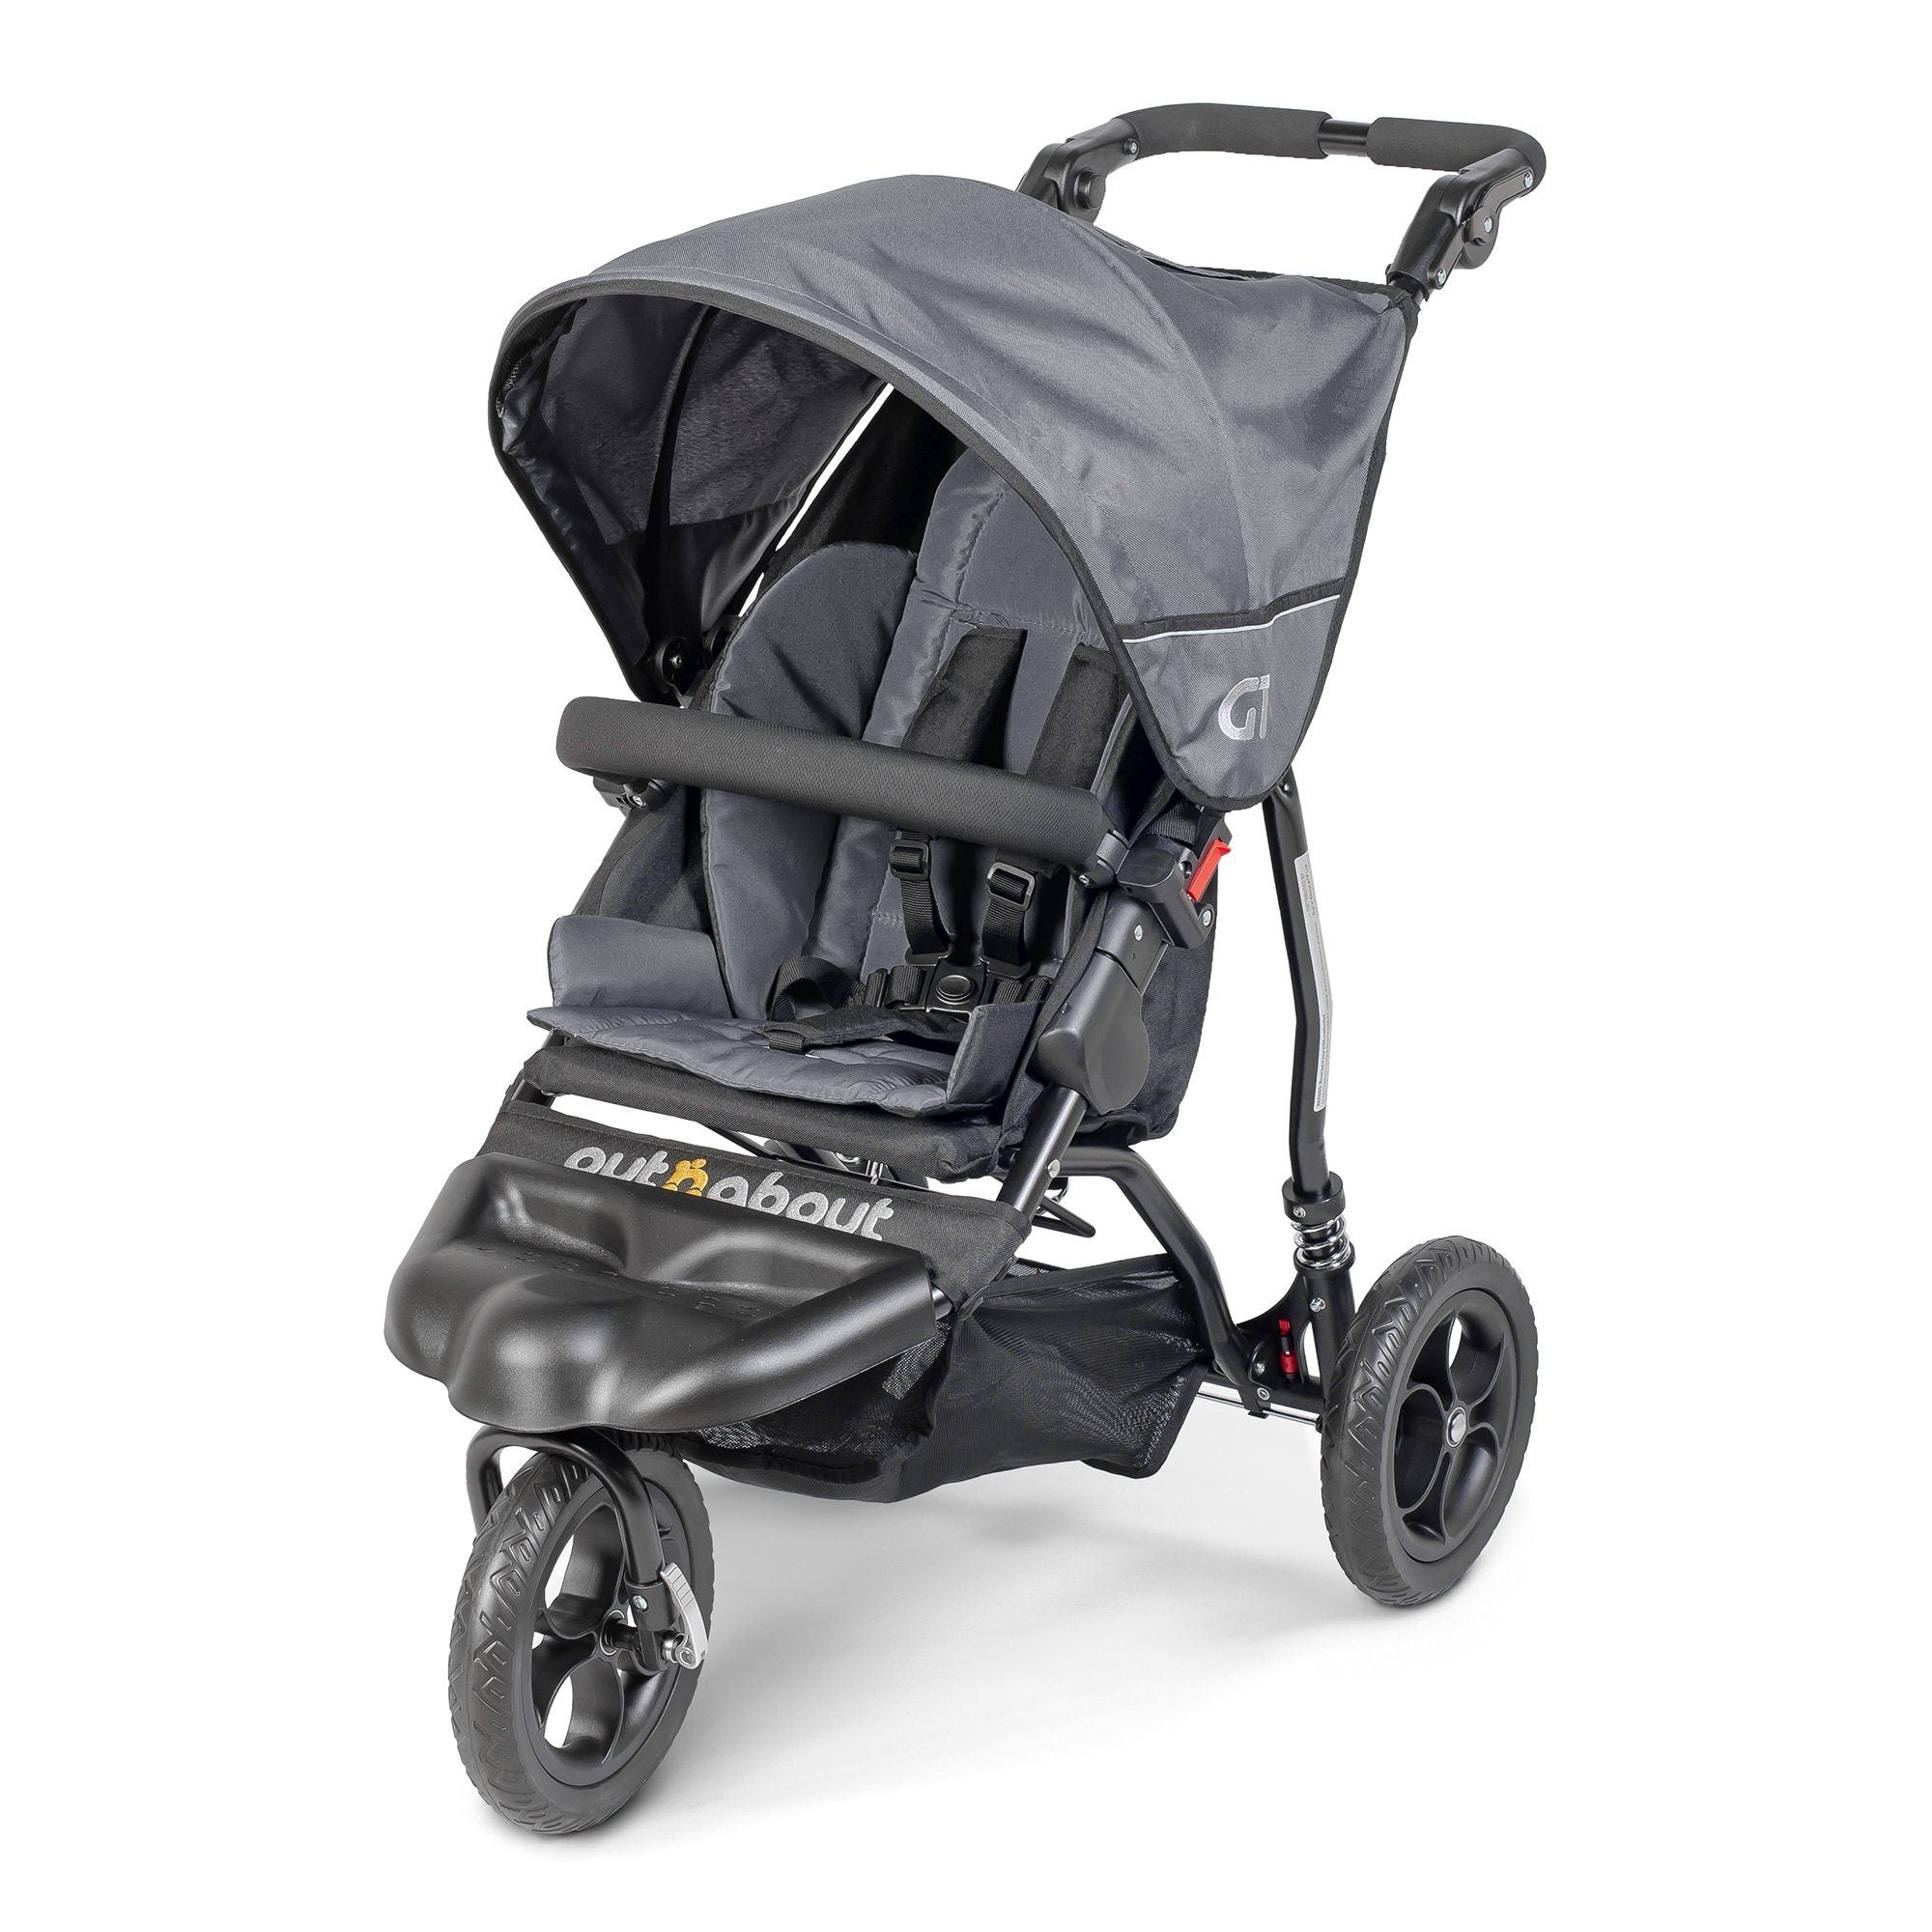 Out'n'About GT Single Pushchair - Steel Grey